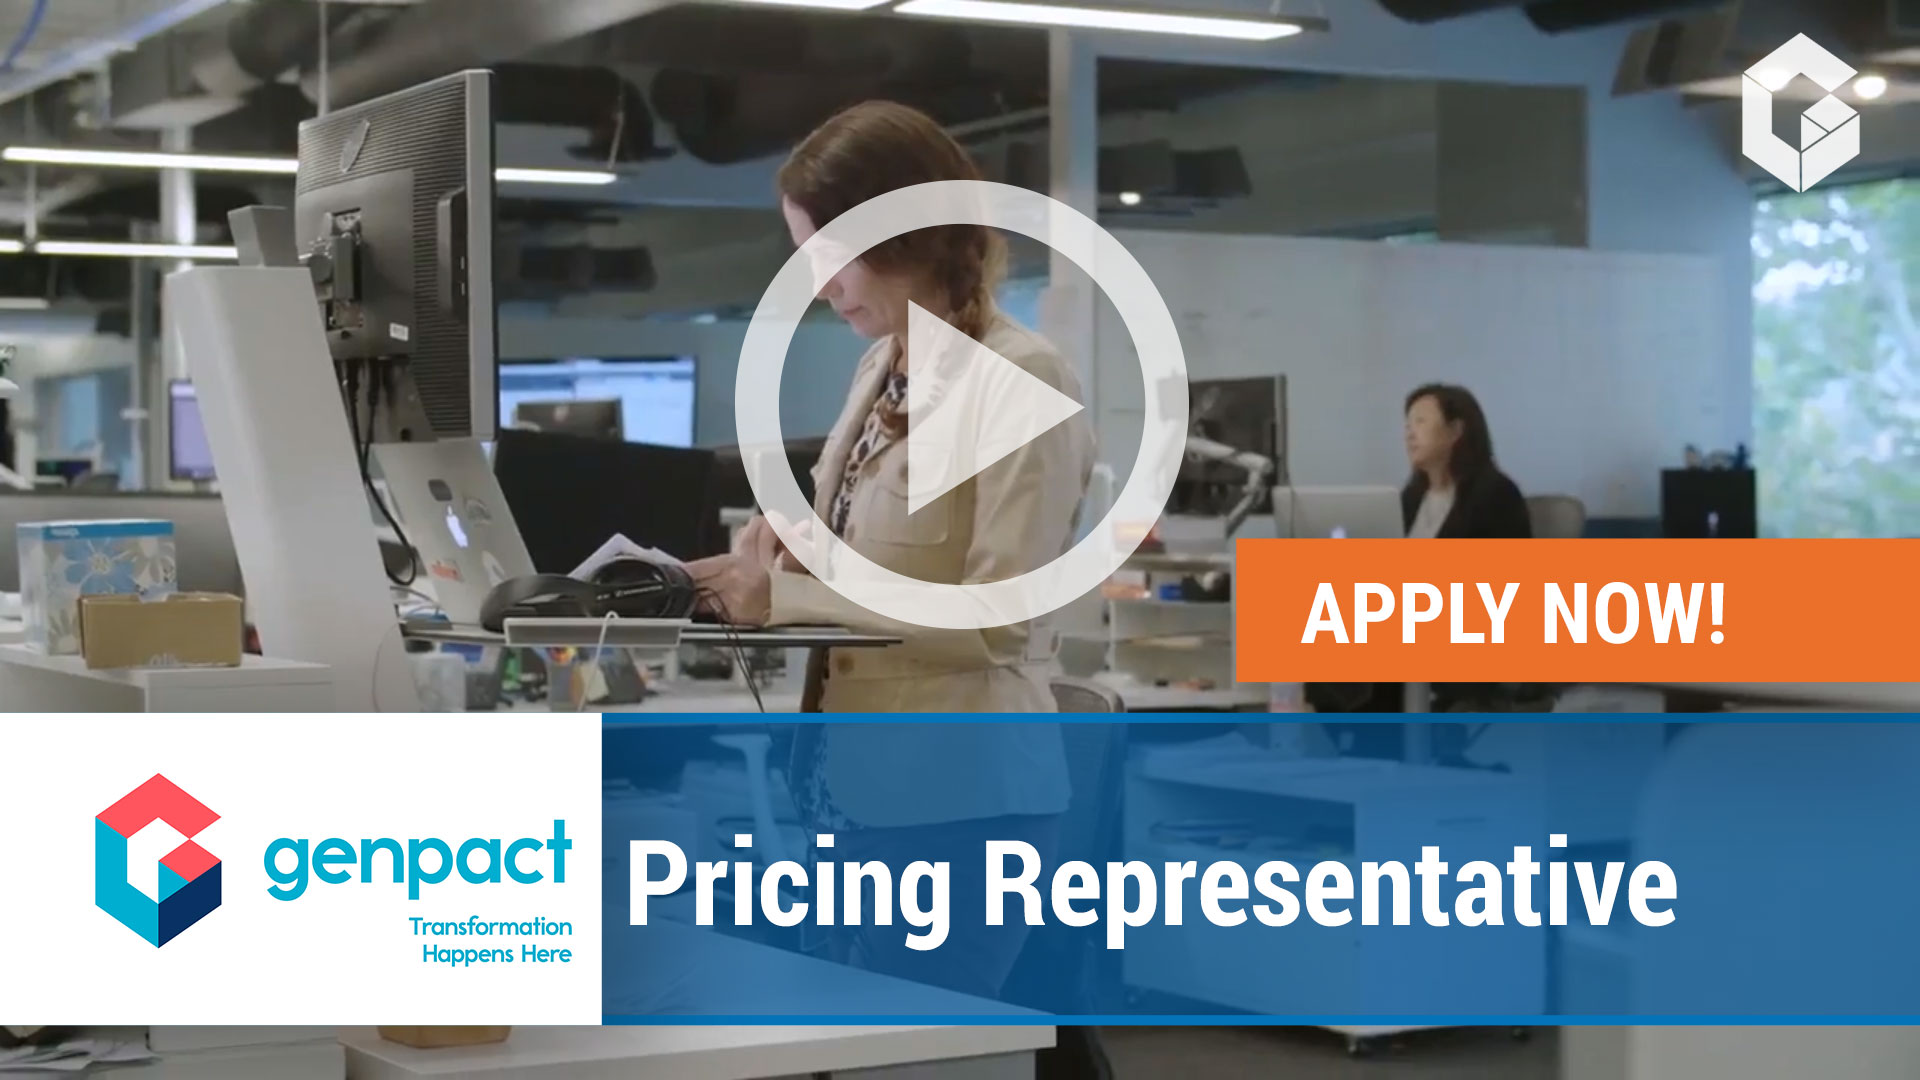 Watch our careers video for available job opening Pricing Representative in Cedar Park, Texas